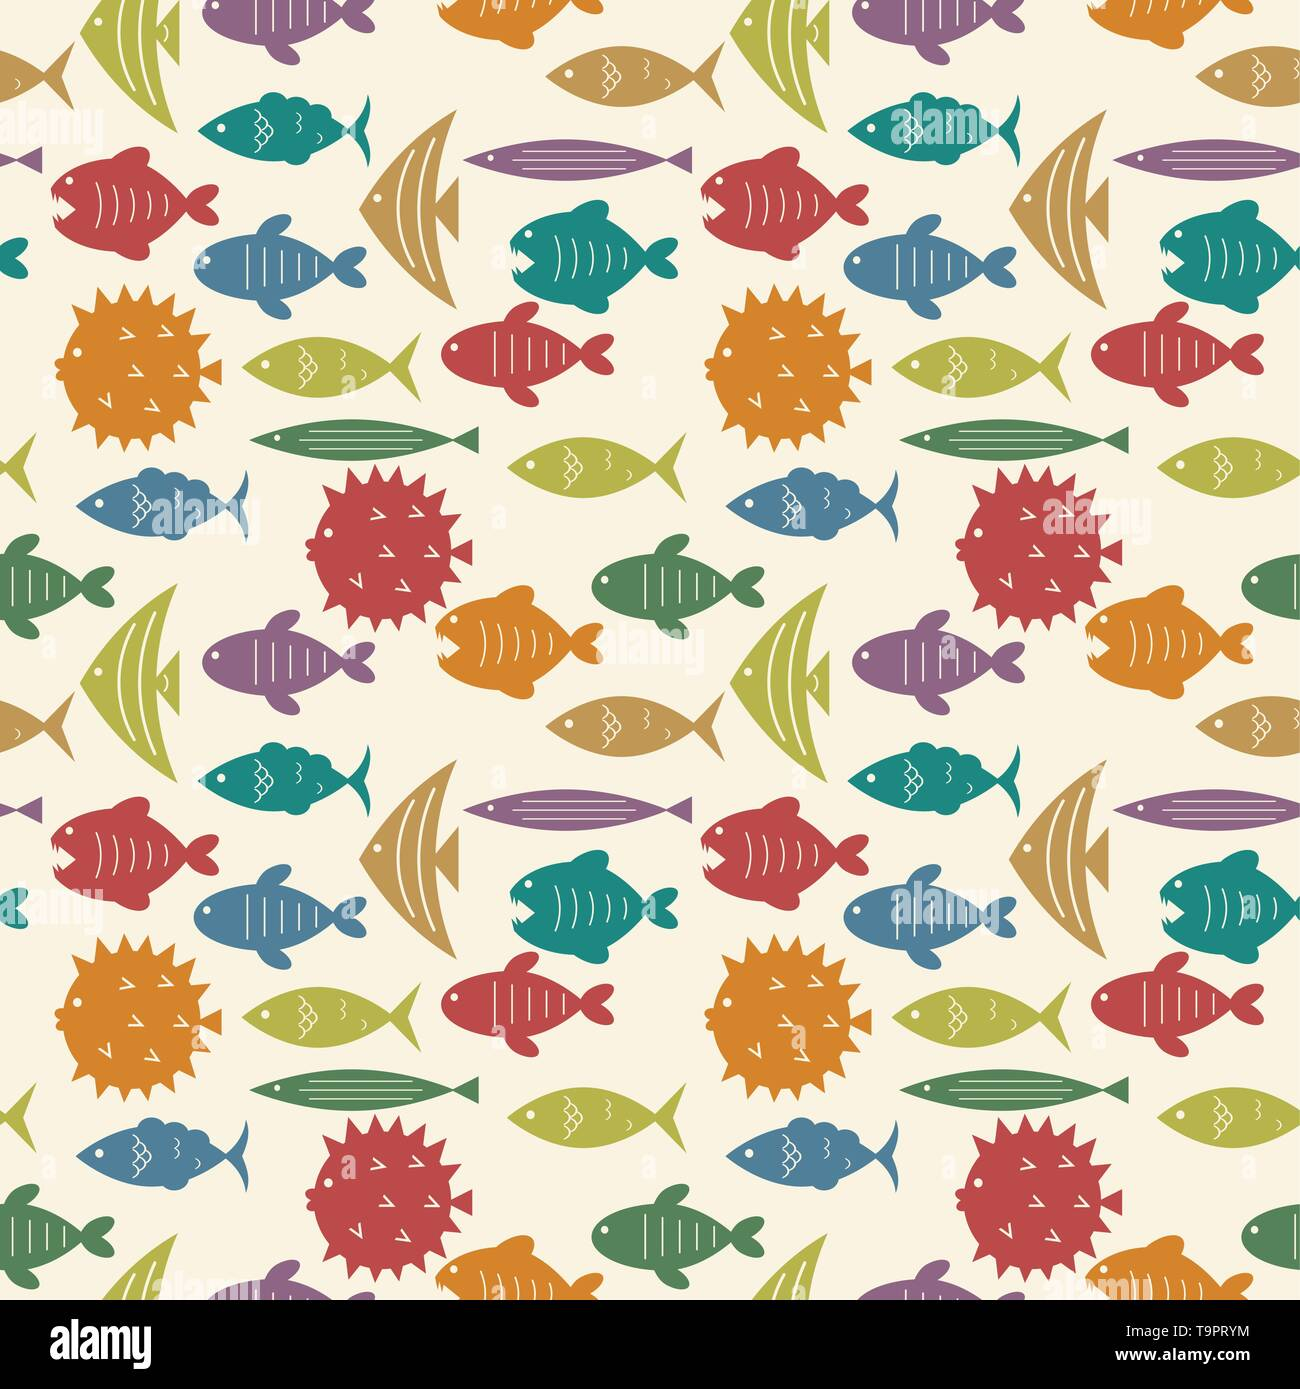 seamless pattern with colorful fish silhouettes vector background - Stock Image